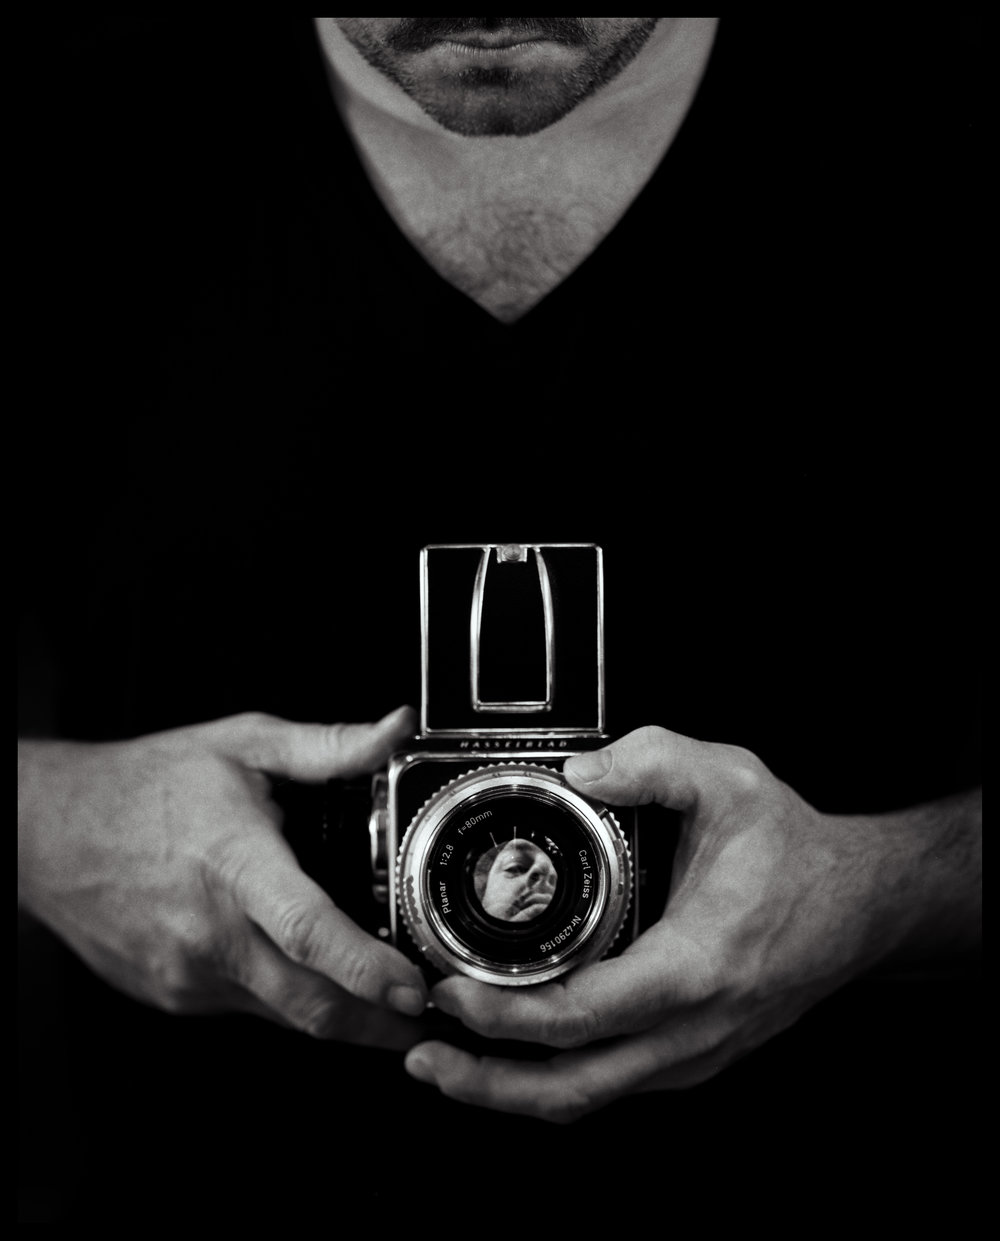 Portrait of a Photographer | Intrepid 5x4 | Schneider 240mm | Ilford HP5 | Darren Rose